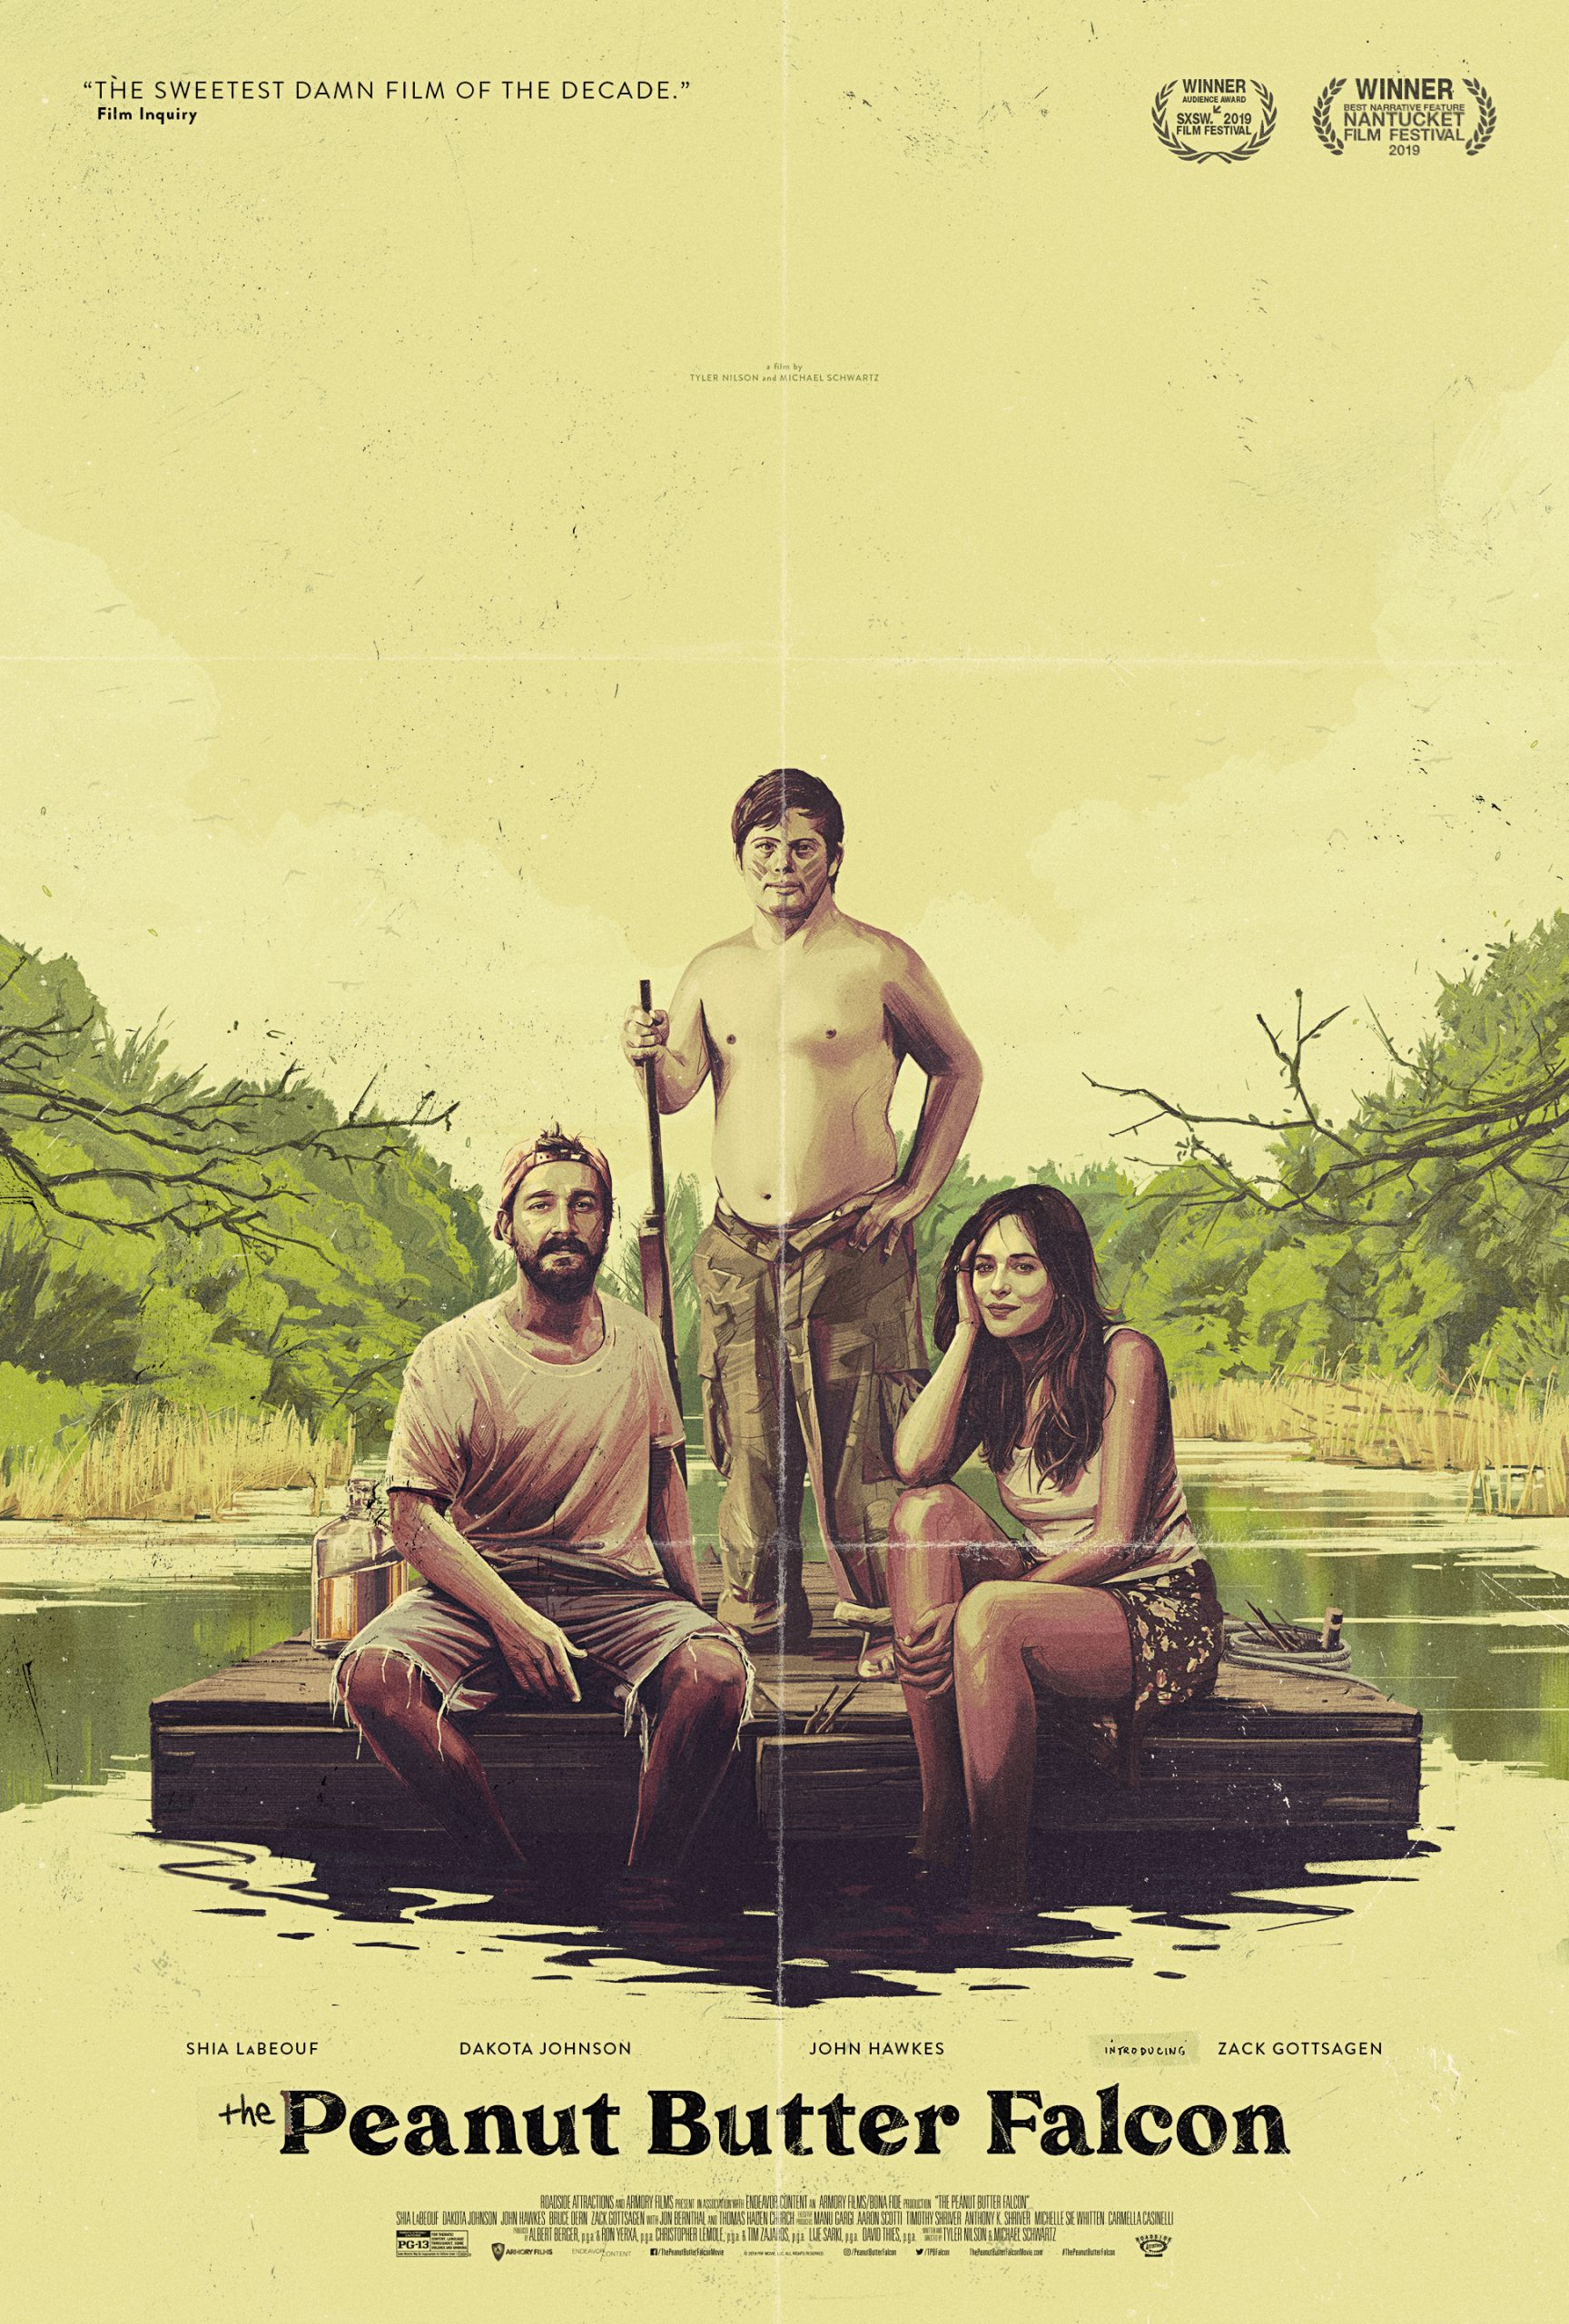 Peanut Butter Falcon movie poster, with a two young men and a young woman posing on a raft